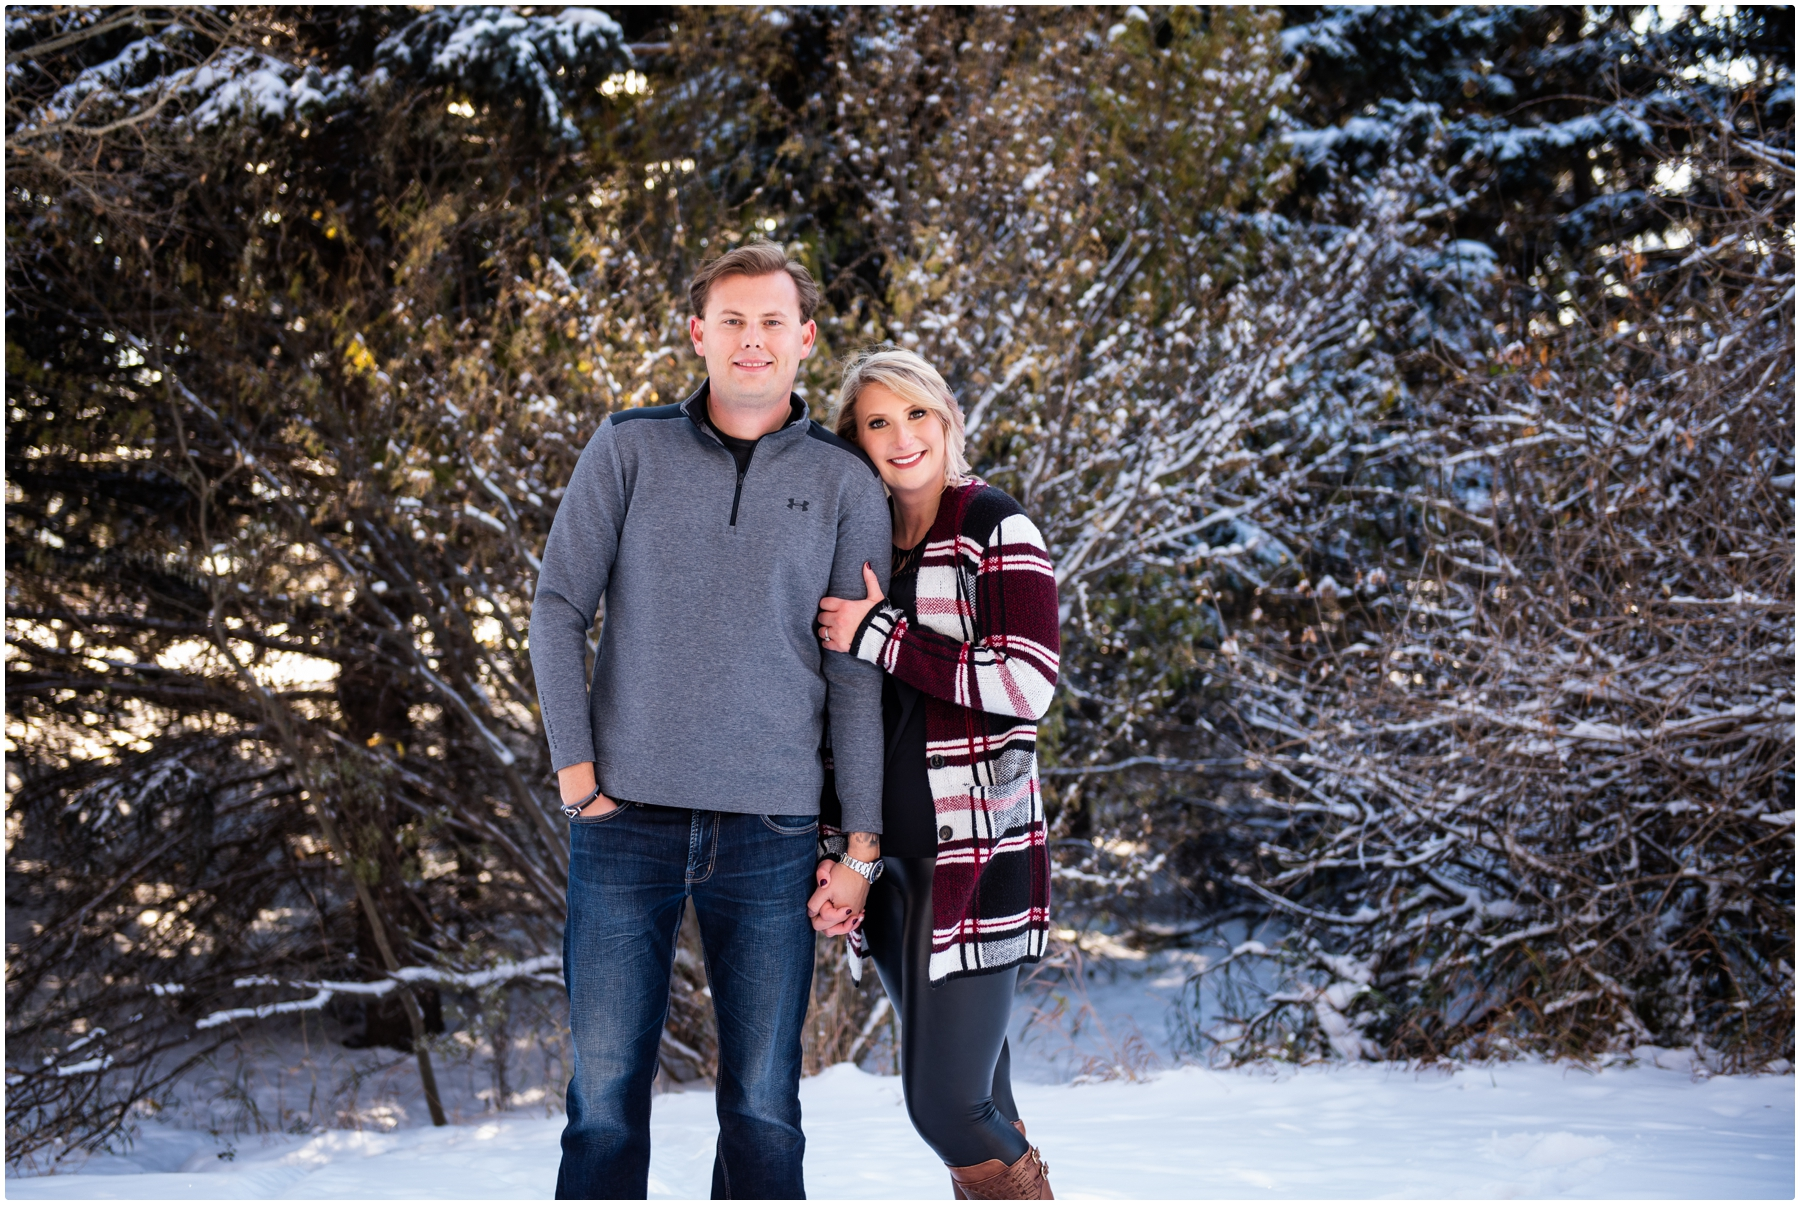 Calgary Pregnancy Announcement Photos- Calgary Maternity Photographer